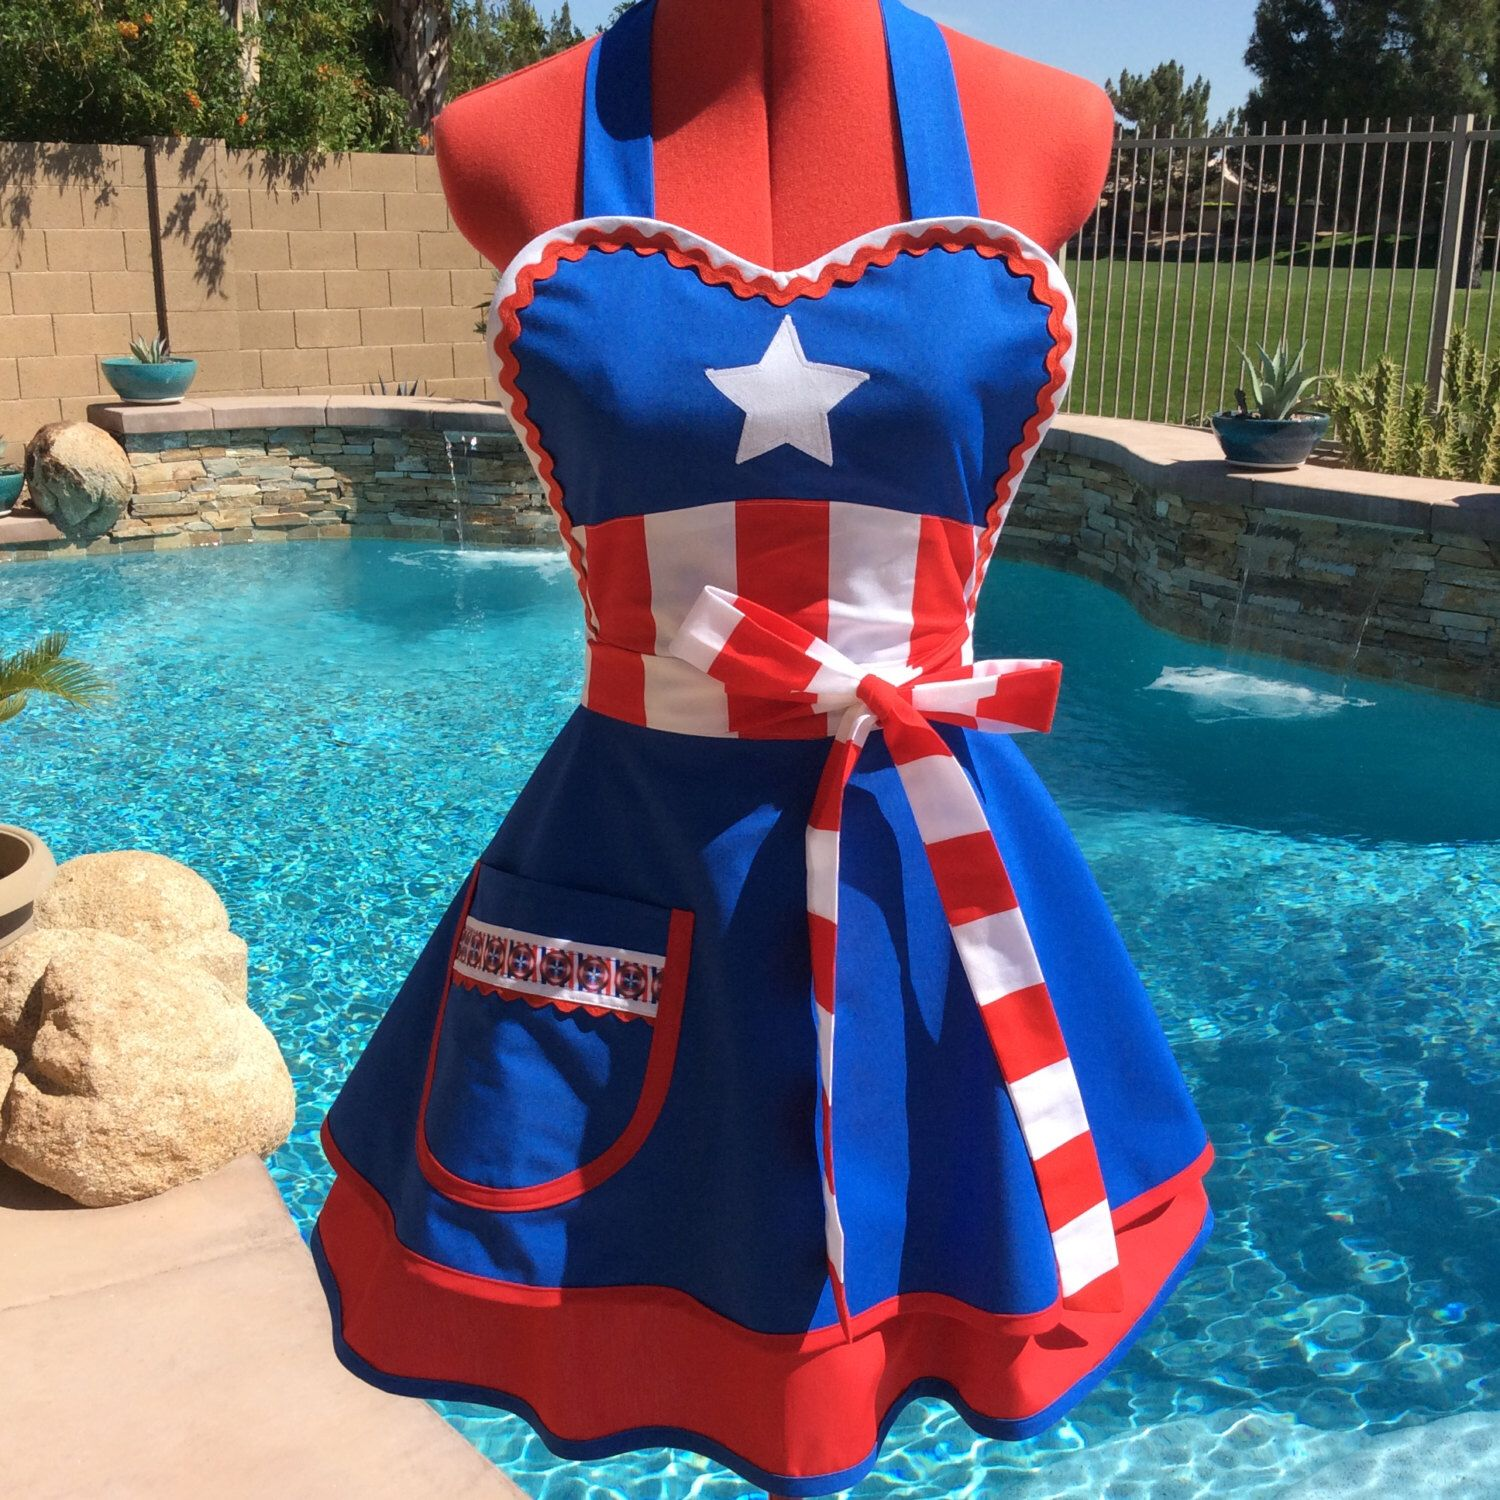 Snow white apron etsy - Captain America Inspired Sassy And Chic Sassy Apron Made With Kona Cotton In Blue And Red And Finished Off With Red White Stripe Sash Fabric Is